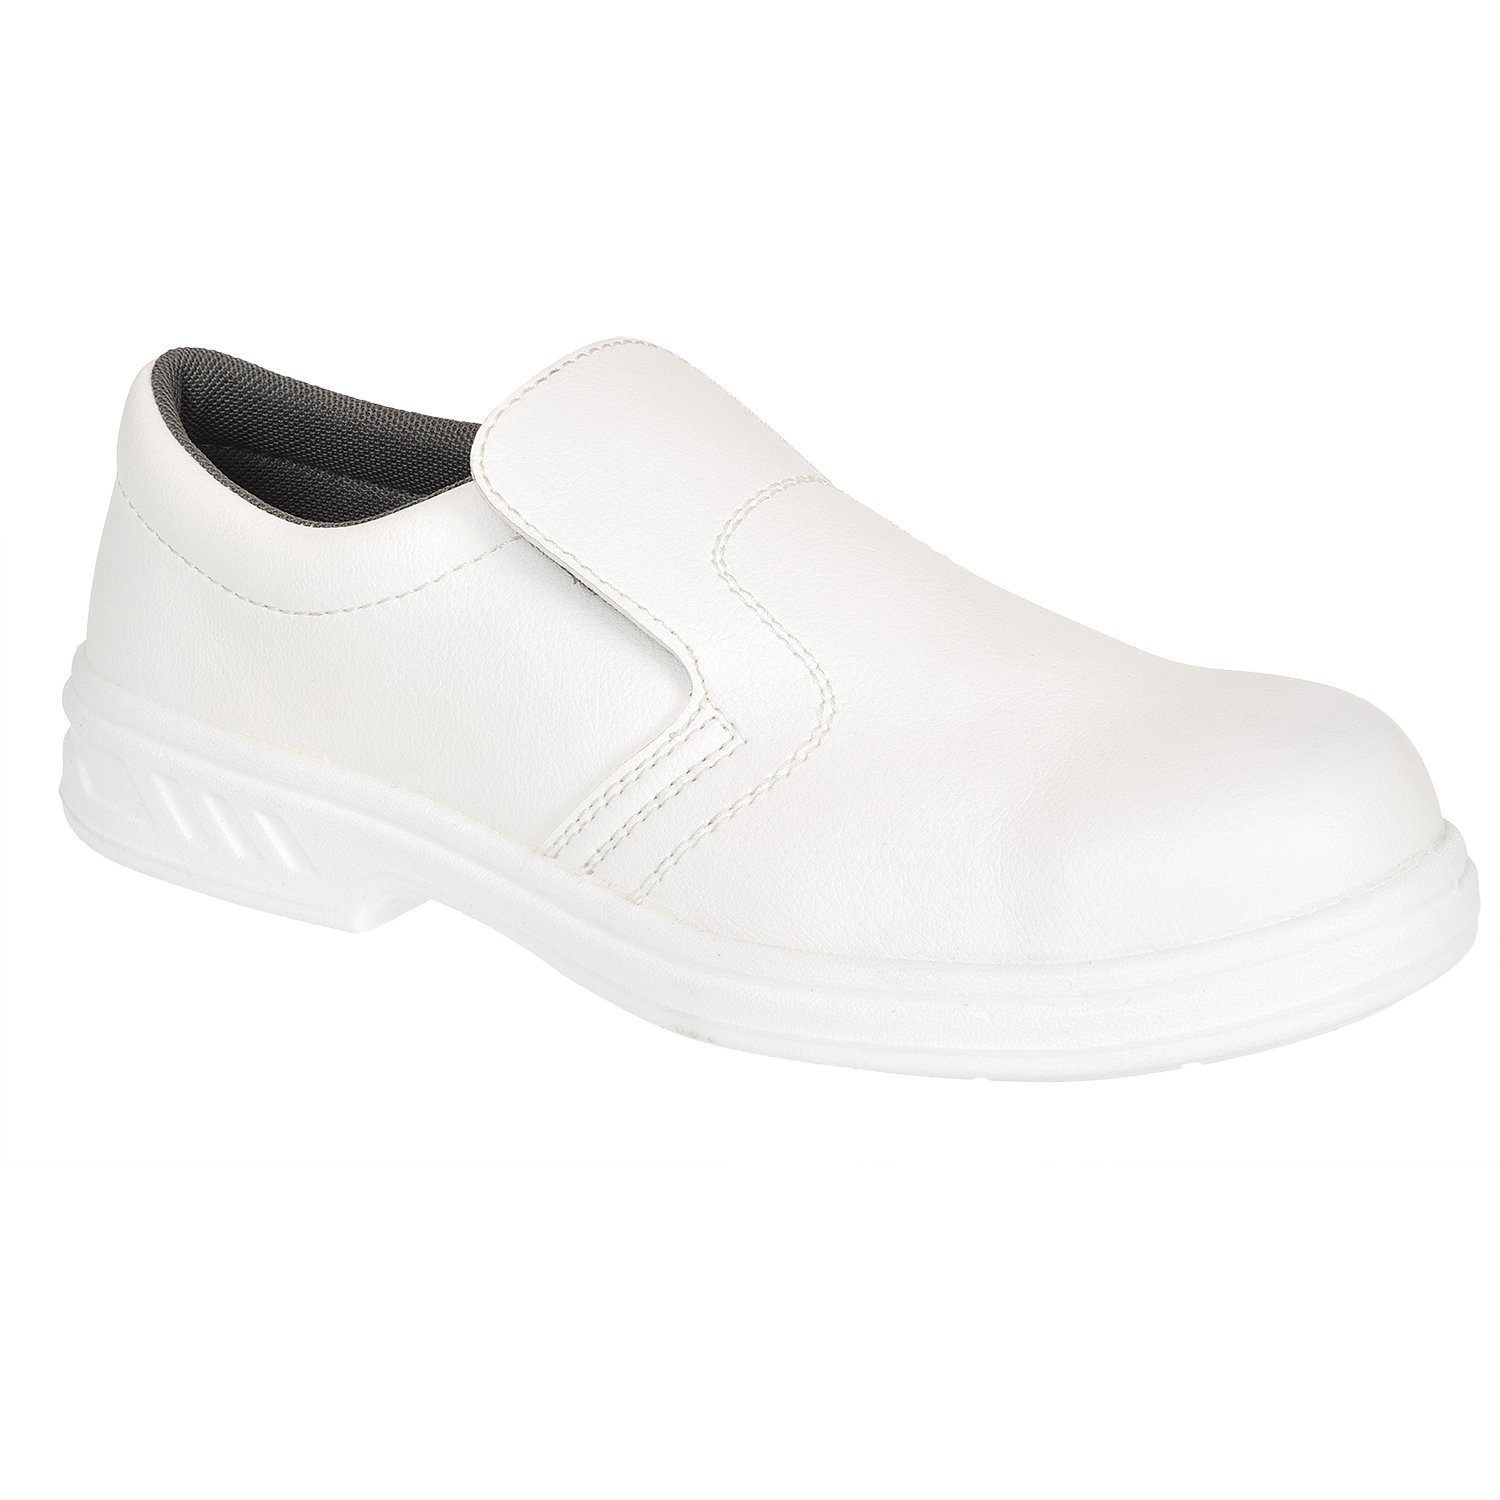 Portwest FW81 - Slip-On de seguridad S2 Zapato, color Blanco, talla 36